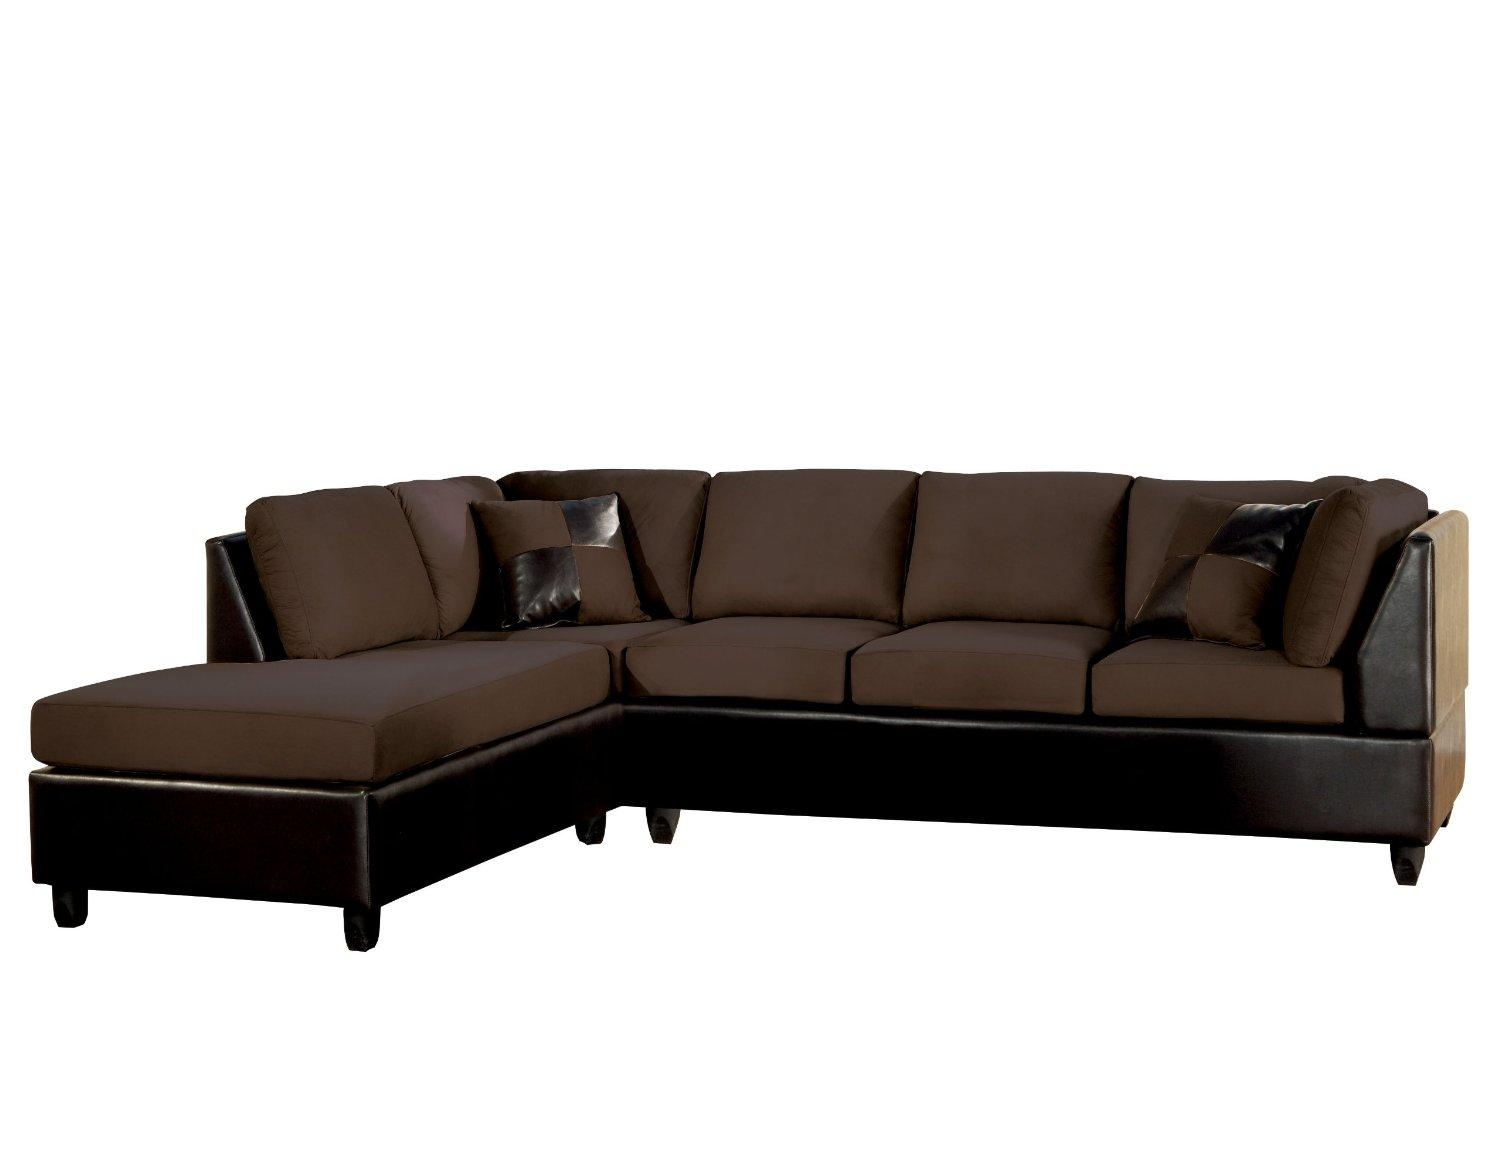 Furniture & Rug: Fancy Sectional Sleeper Sofa For Best Home Intended For Queen Sofa Sleeper Sectional Microfiber (Image 4 of 20)